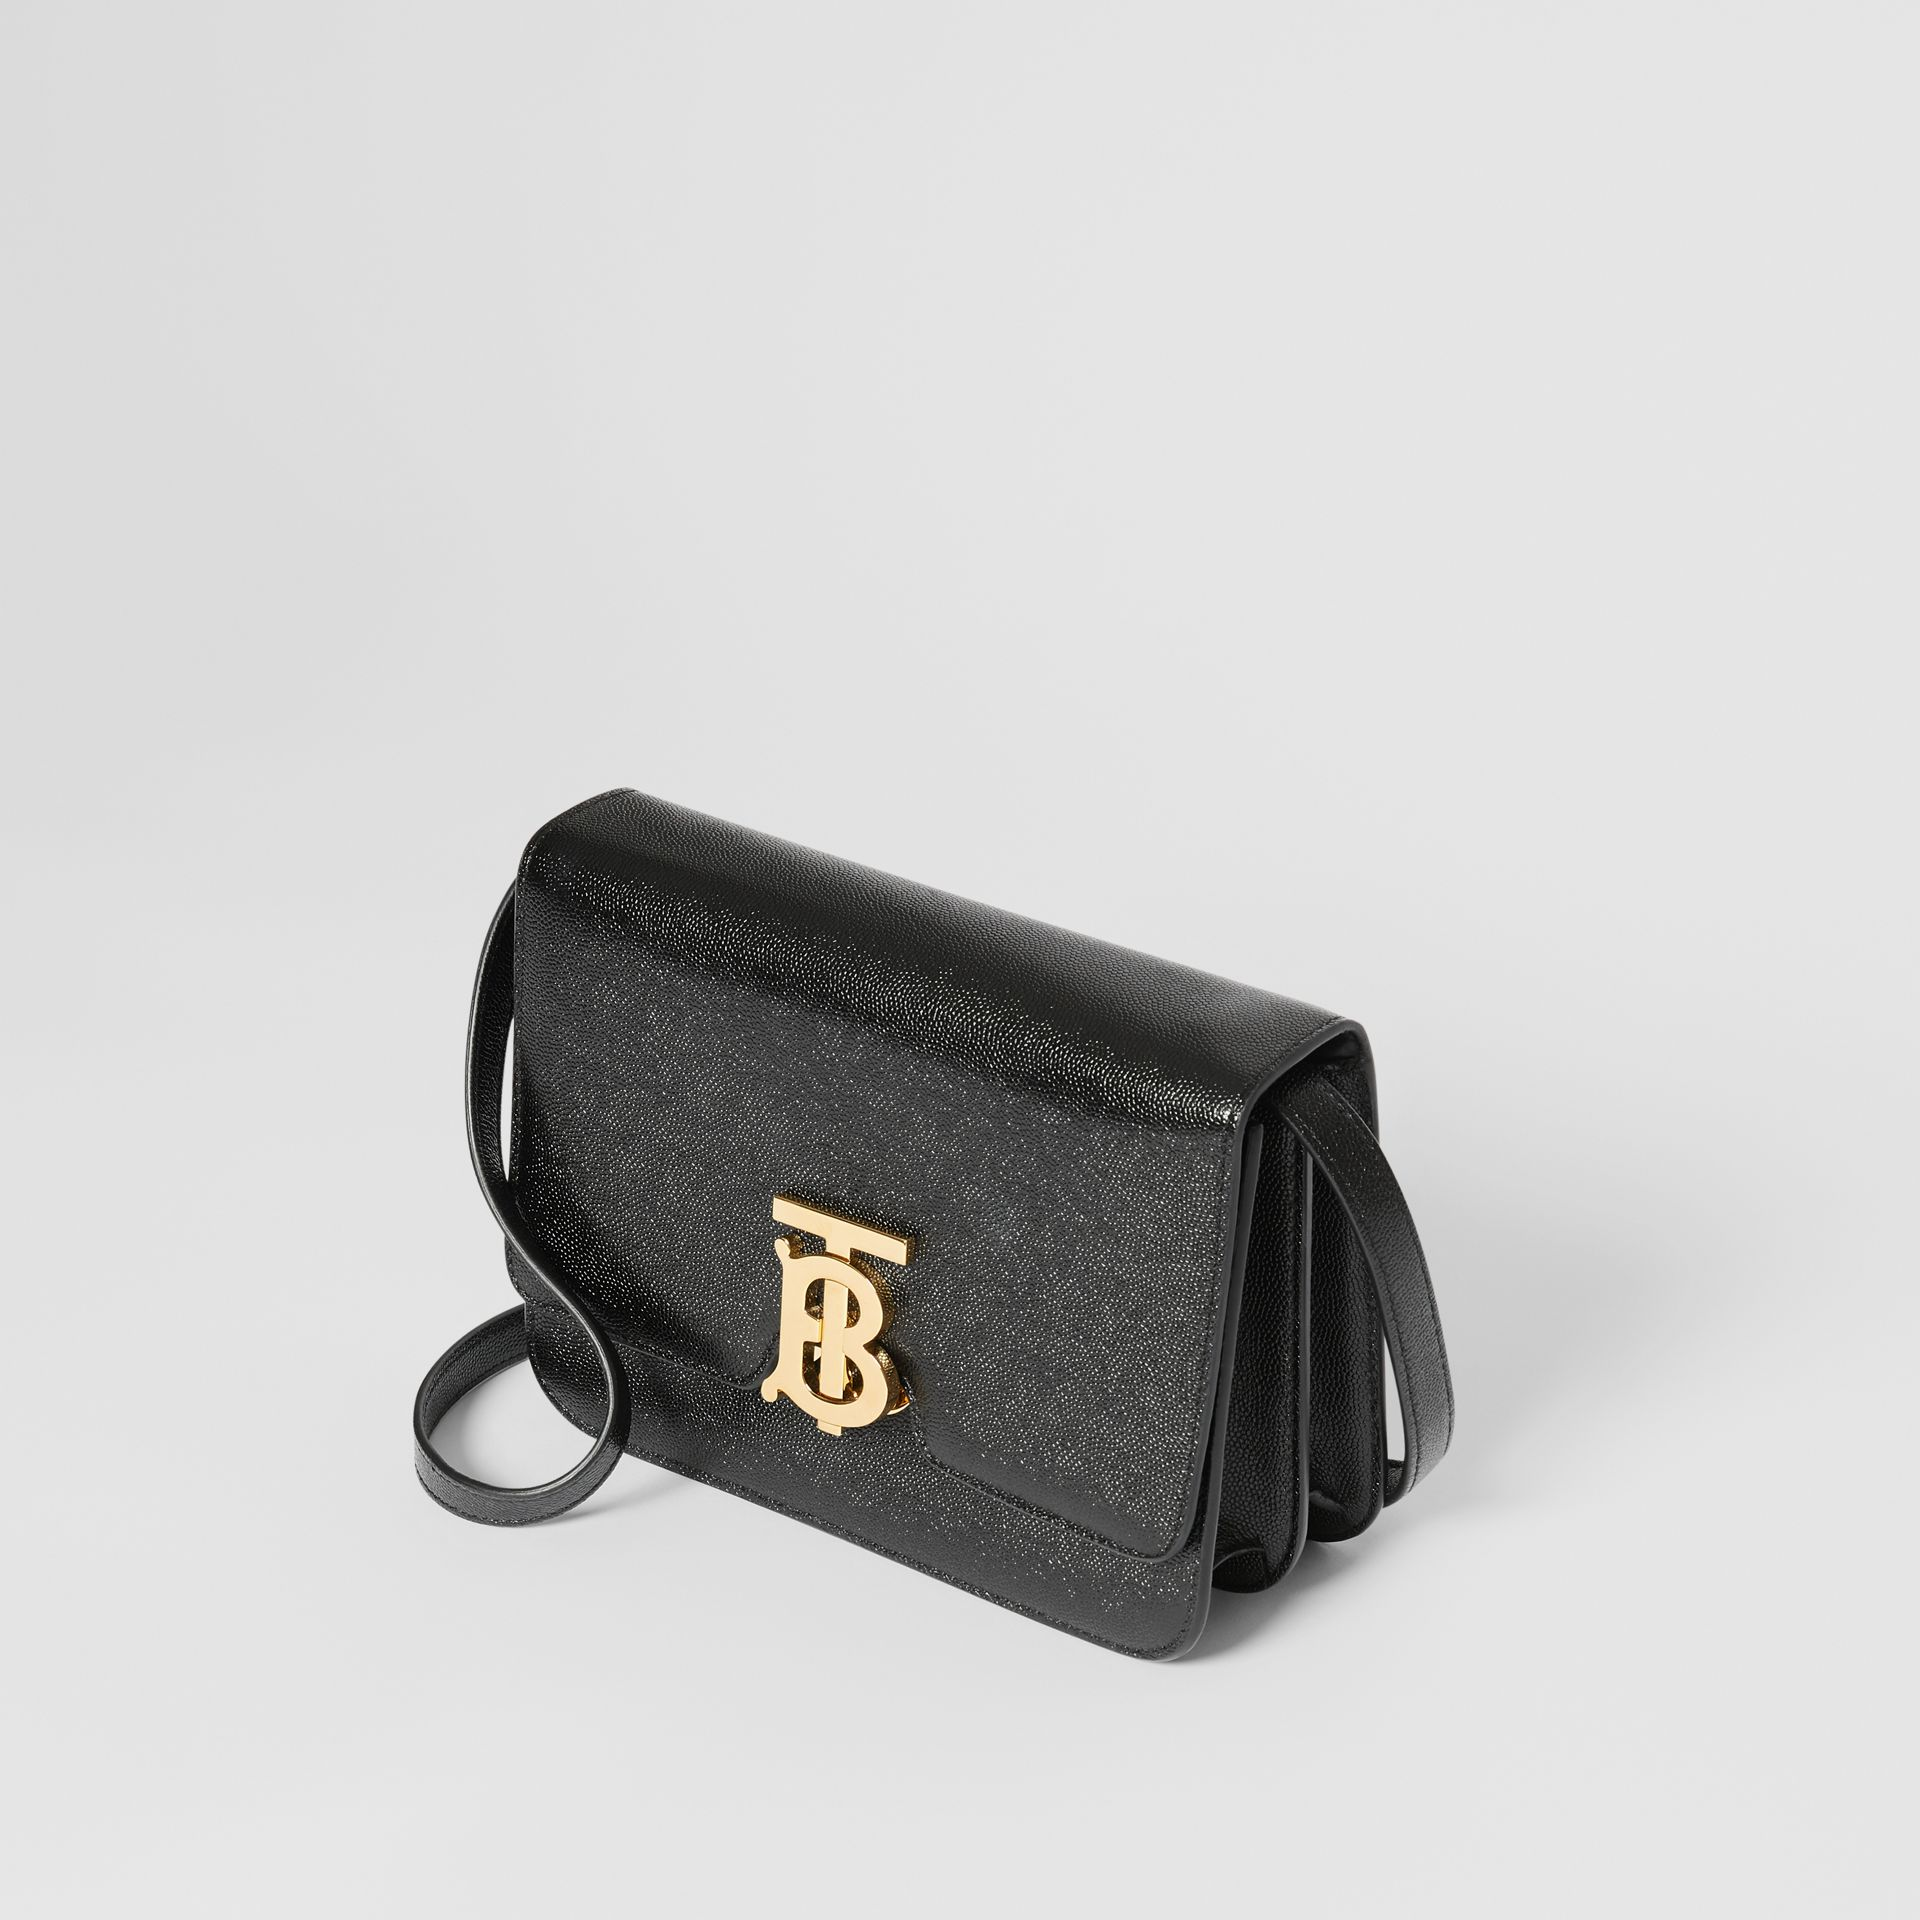 Small Grainy Leather TB Bag in Black - Women | Burberry - gallery image 3